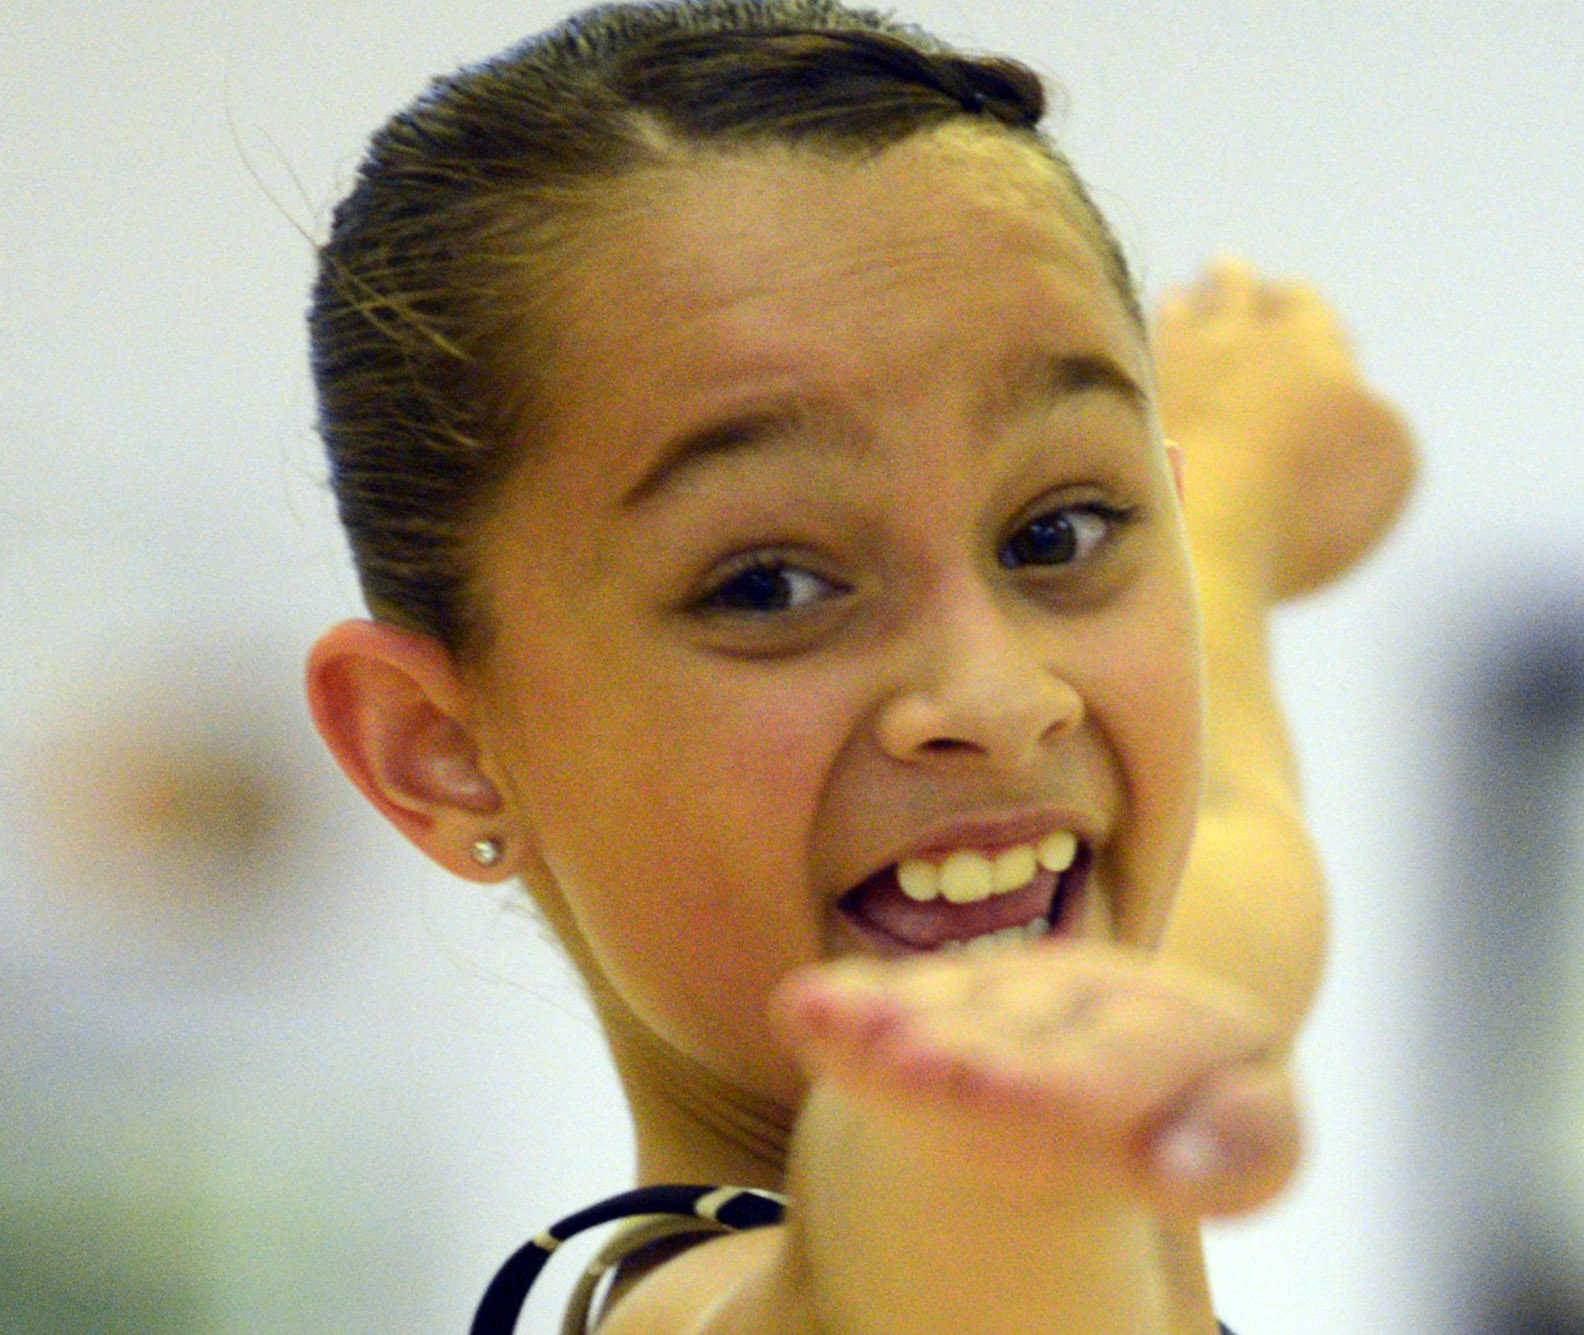 Brianne Cannataro, 10, practices one of her tap-dancing routines at The Edge Dance Academy in Palatine. The Schaumburg girl is one of just three dancers chosen to represent the United States at the World Tap Dance Championship, to be held later this year in Germany.